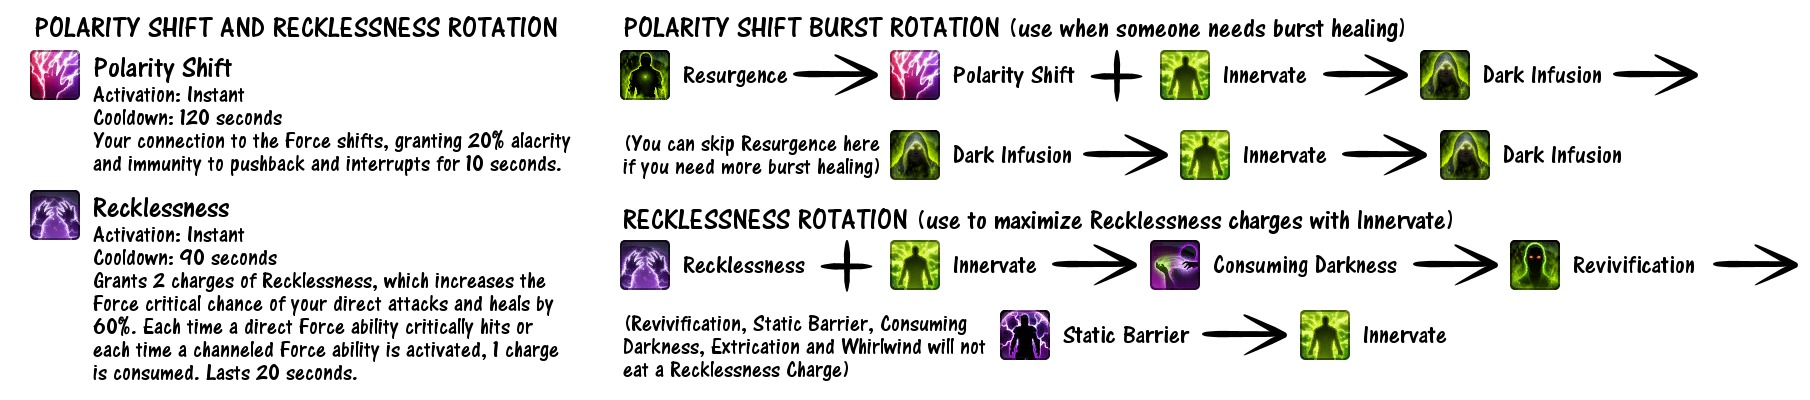 Polarity Shift and Recklessness Rotation